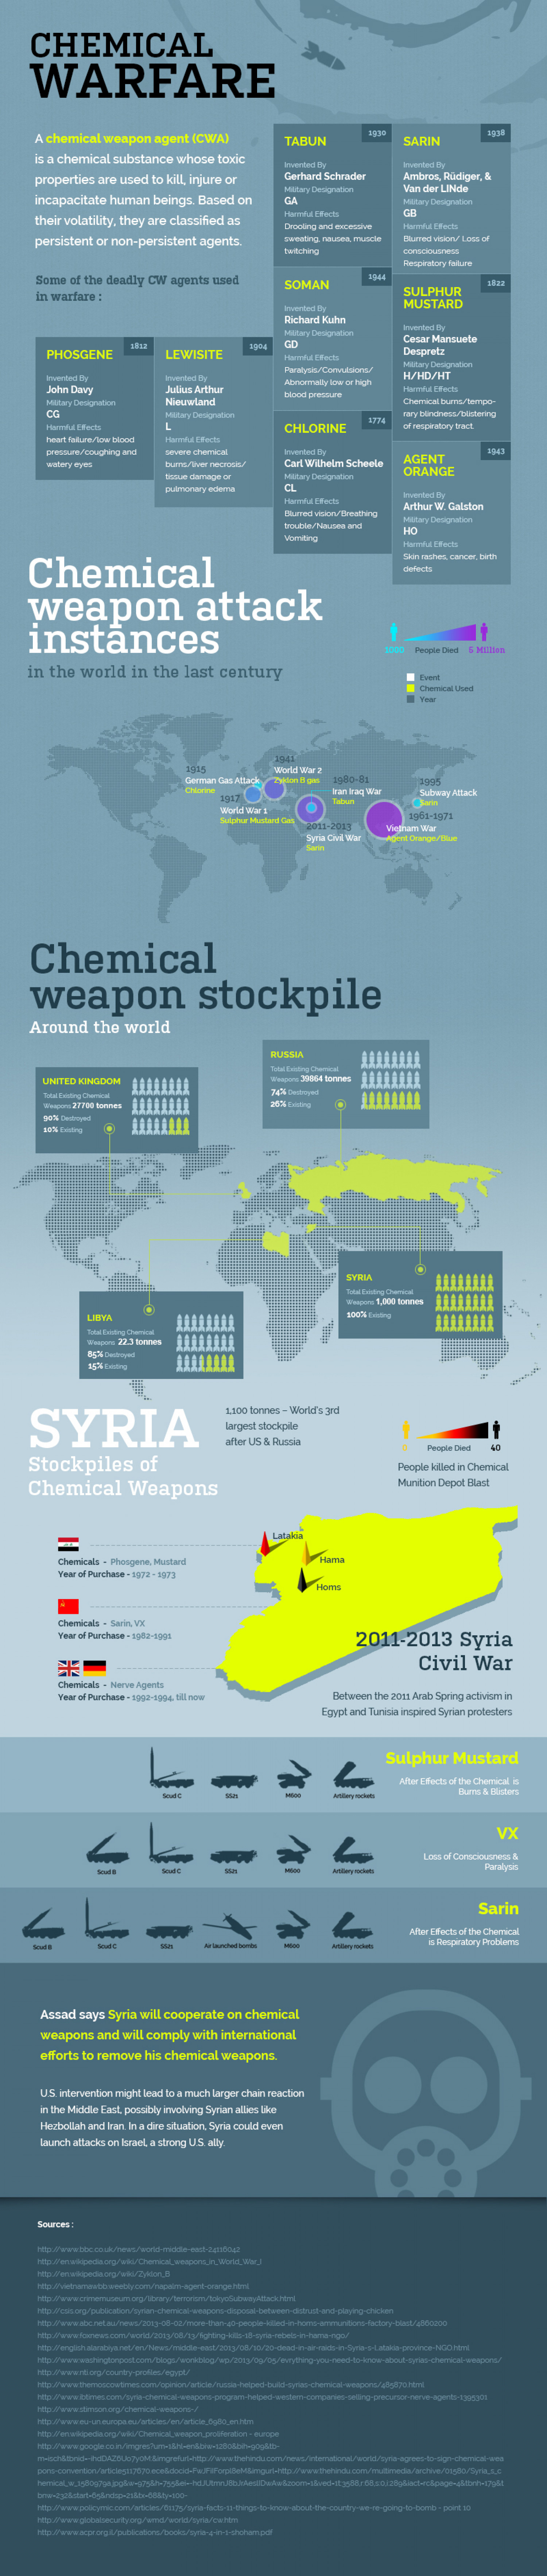 Chemical Warfare Infographic